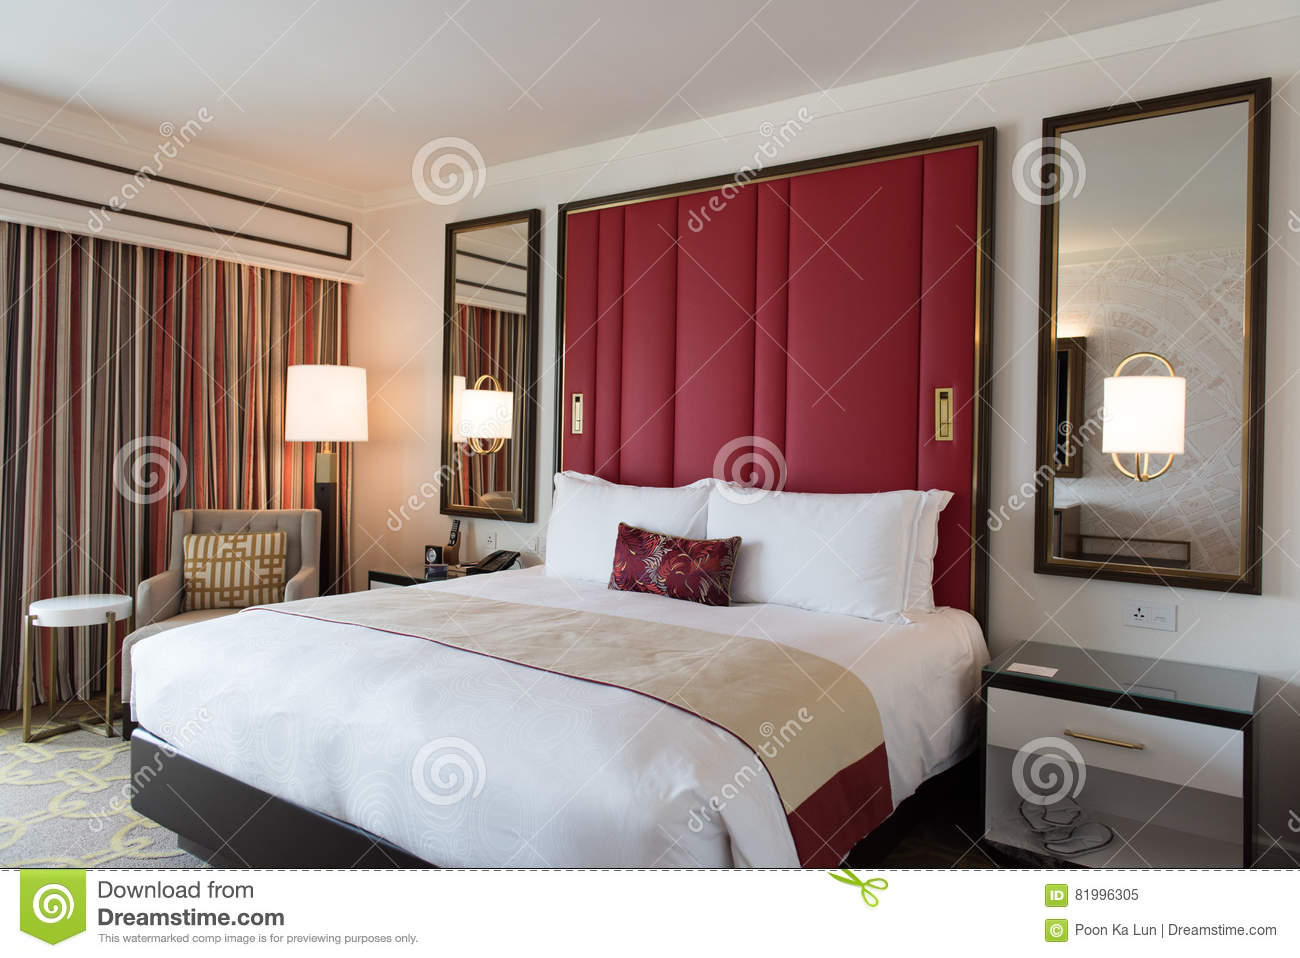 Luxury Bedroom Interior Design With Decoration Stock Image Image Of Decor Brown 81996305